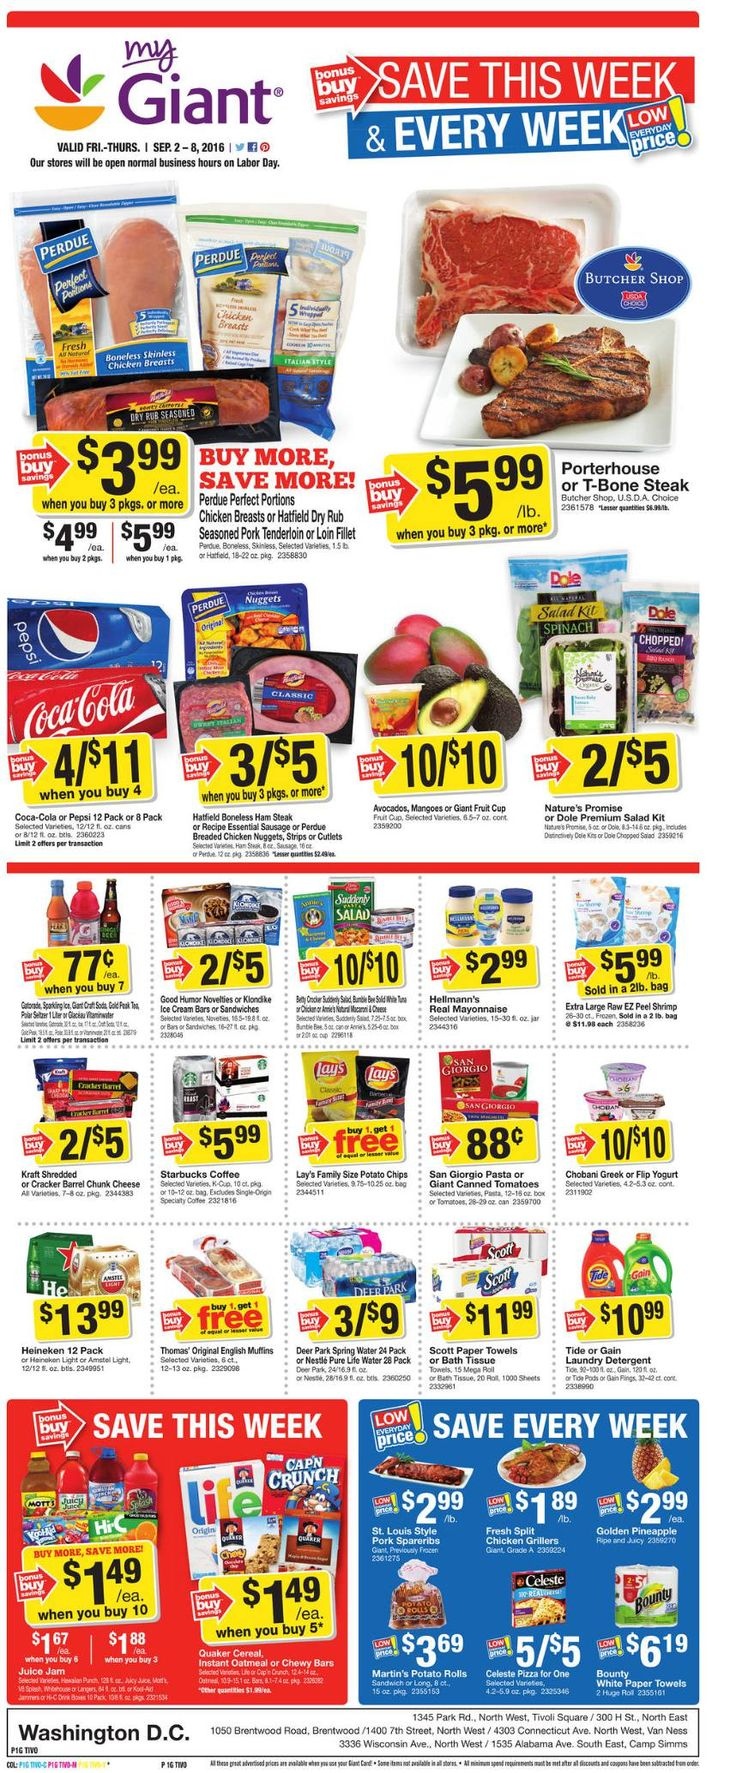 Giant Food Weekly Ad  September 2 - 8, 2016 - http://www.olcatalog.com/grocery/giant-food-weekly-ad.html